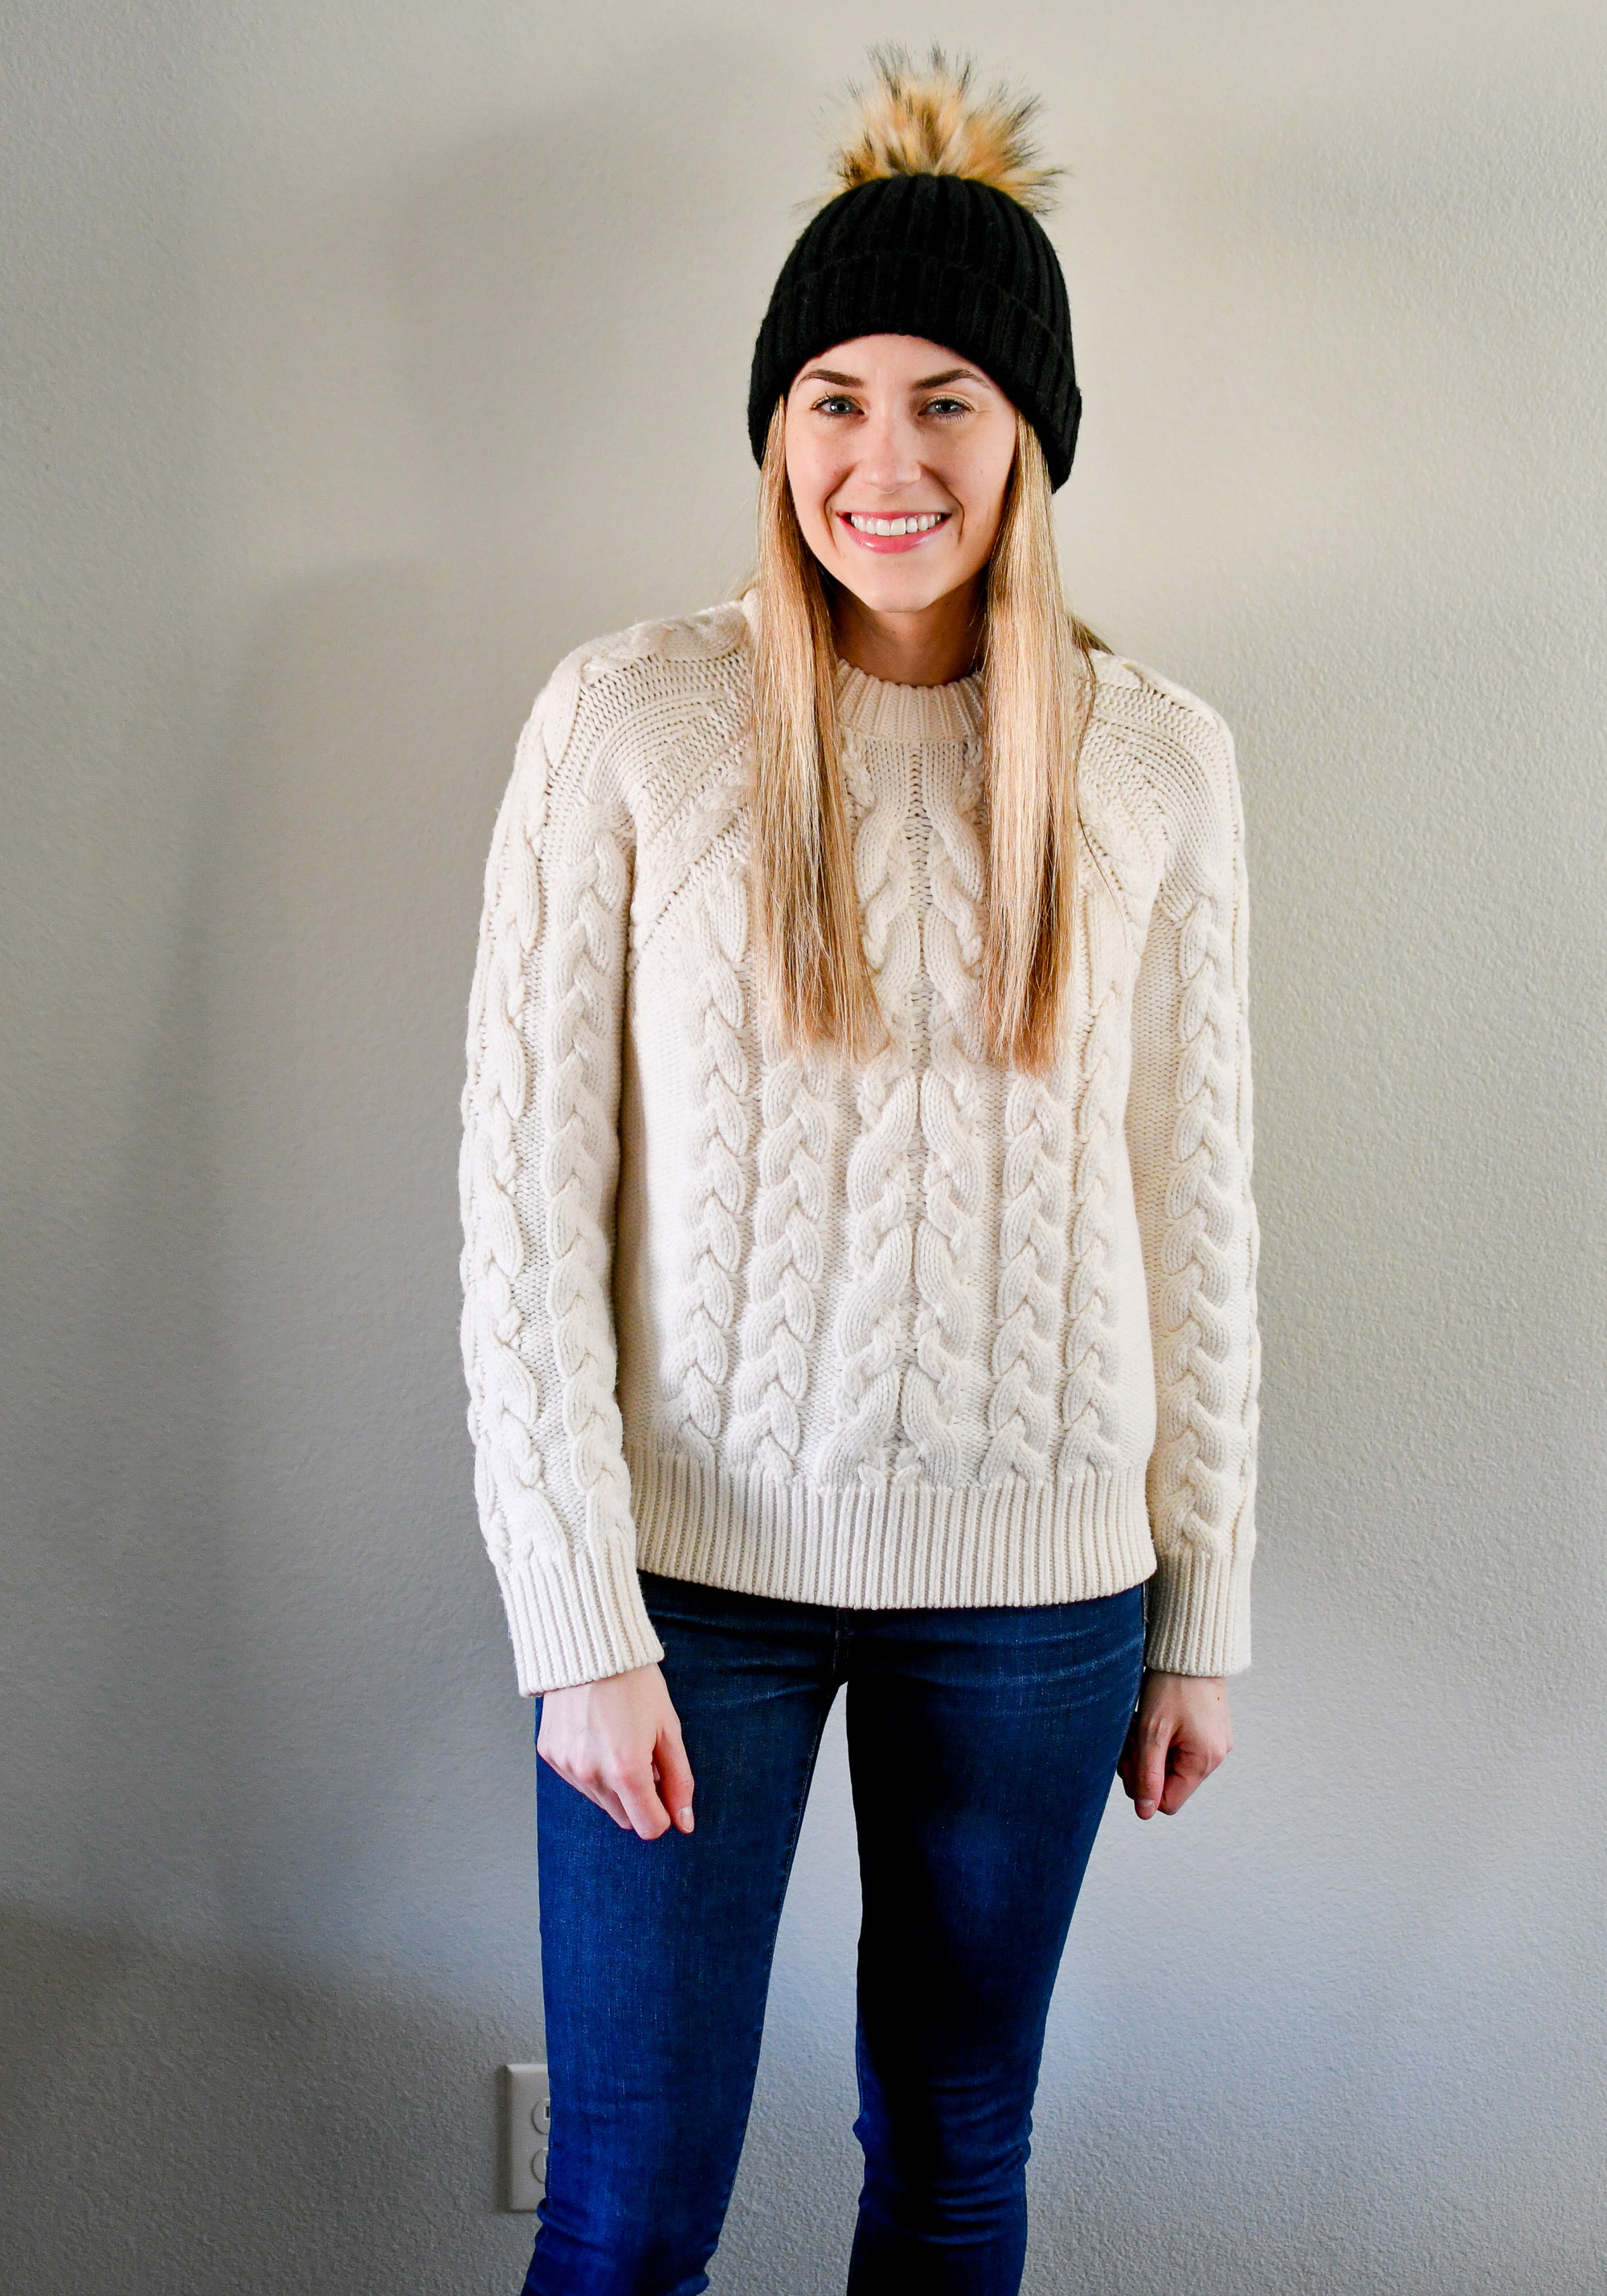 Ivory cable knit sweater outfit with black beanie — Cotton Cashmere Cat Hair